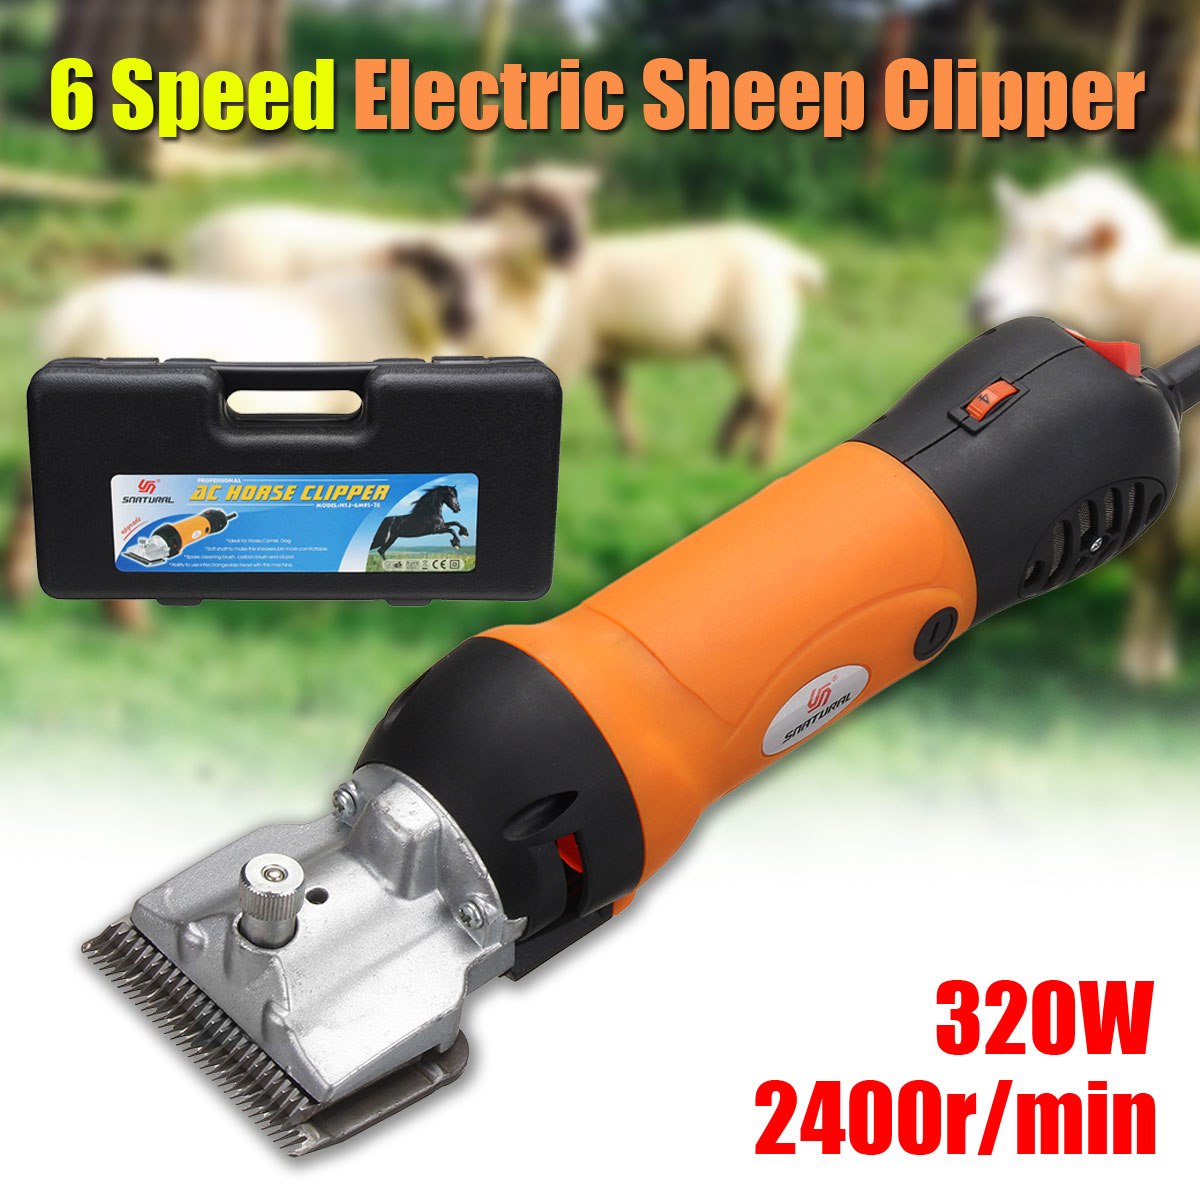 doersupp 110 240V Electric Horse Sheep Clipper 300W Shearing Machine Electric Dog Grooming Kit Cutter Wool scissor 3000r/min